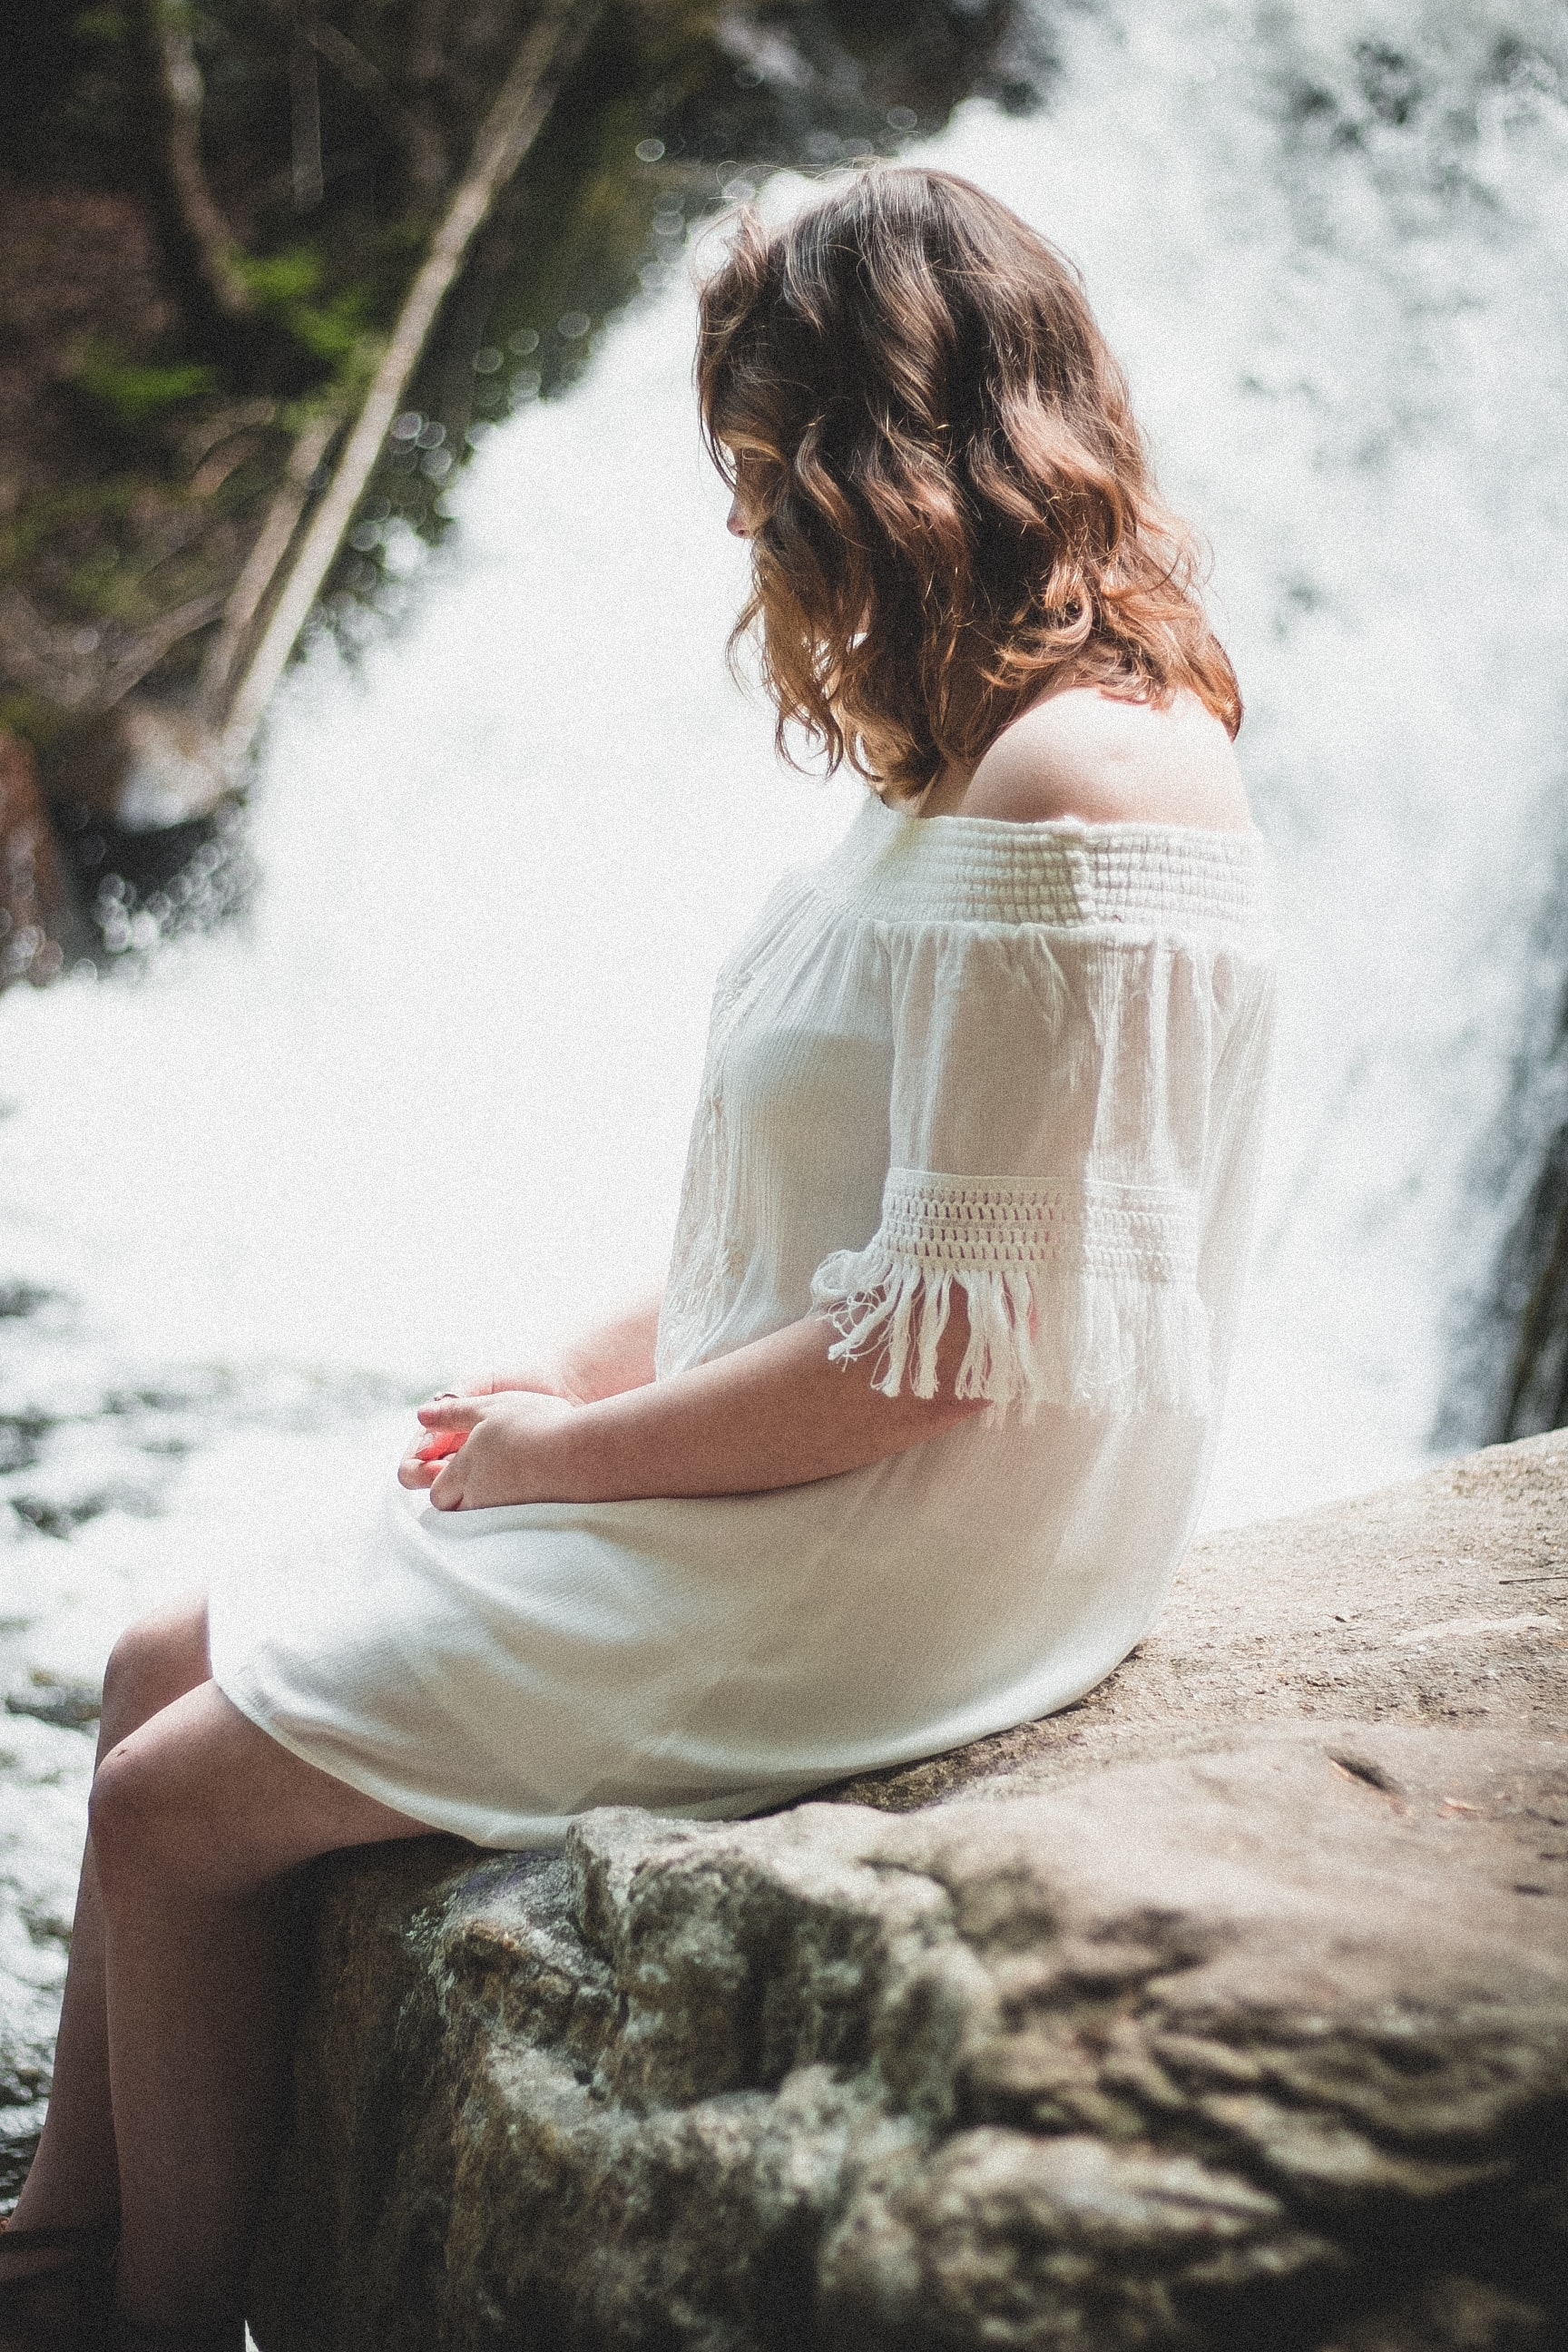 woman sitting on rock beside waterfall at daytime